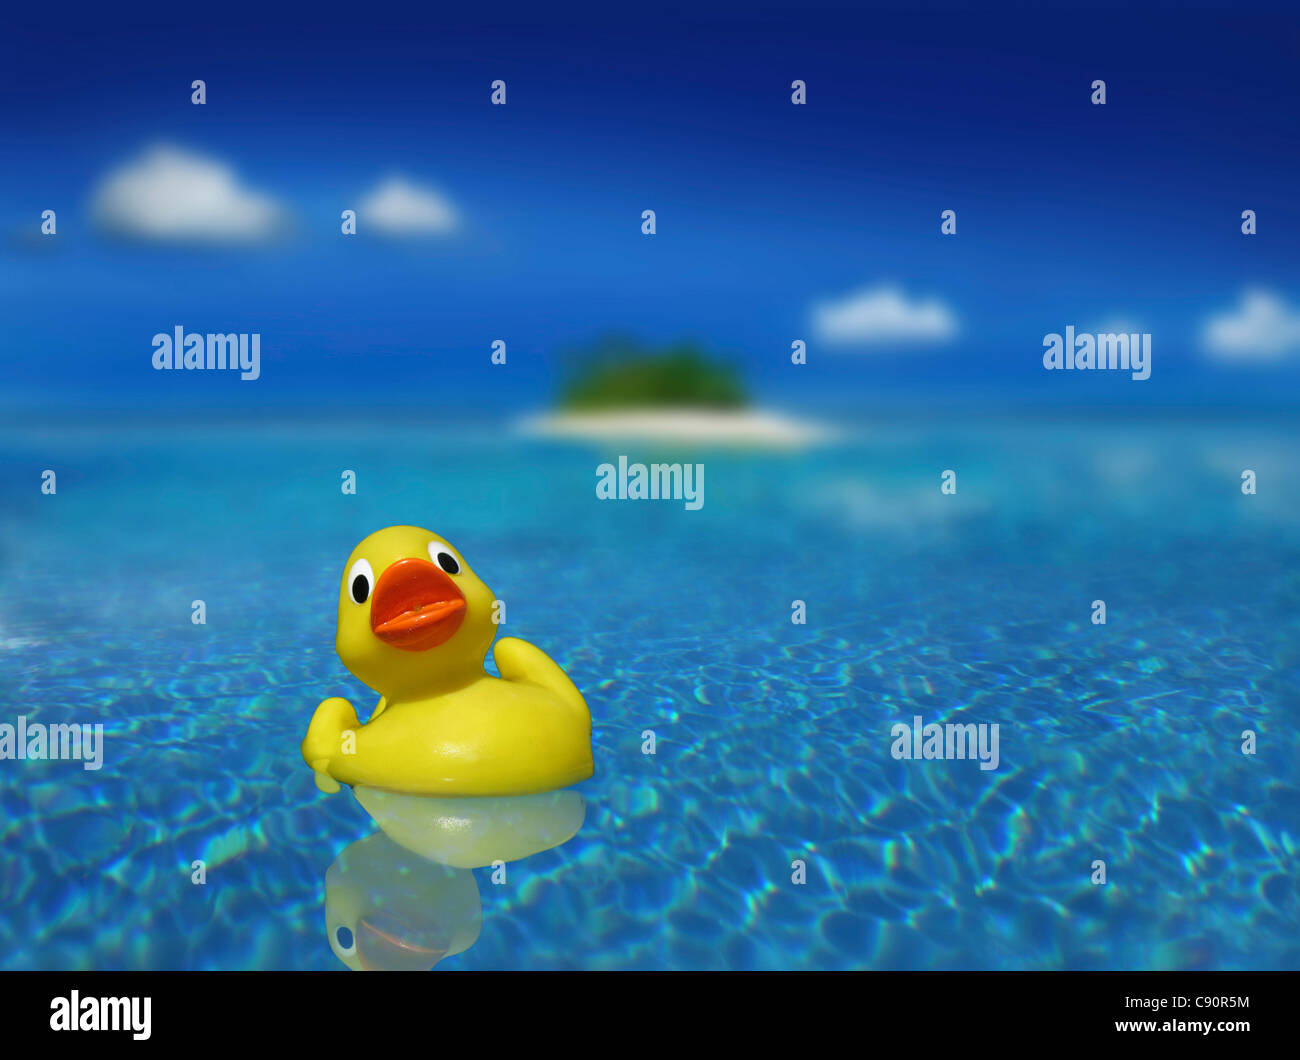 Rubber duck in the water, Palawan Islands, Philippines, Asia - Stock Image